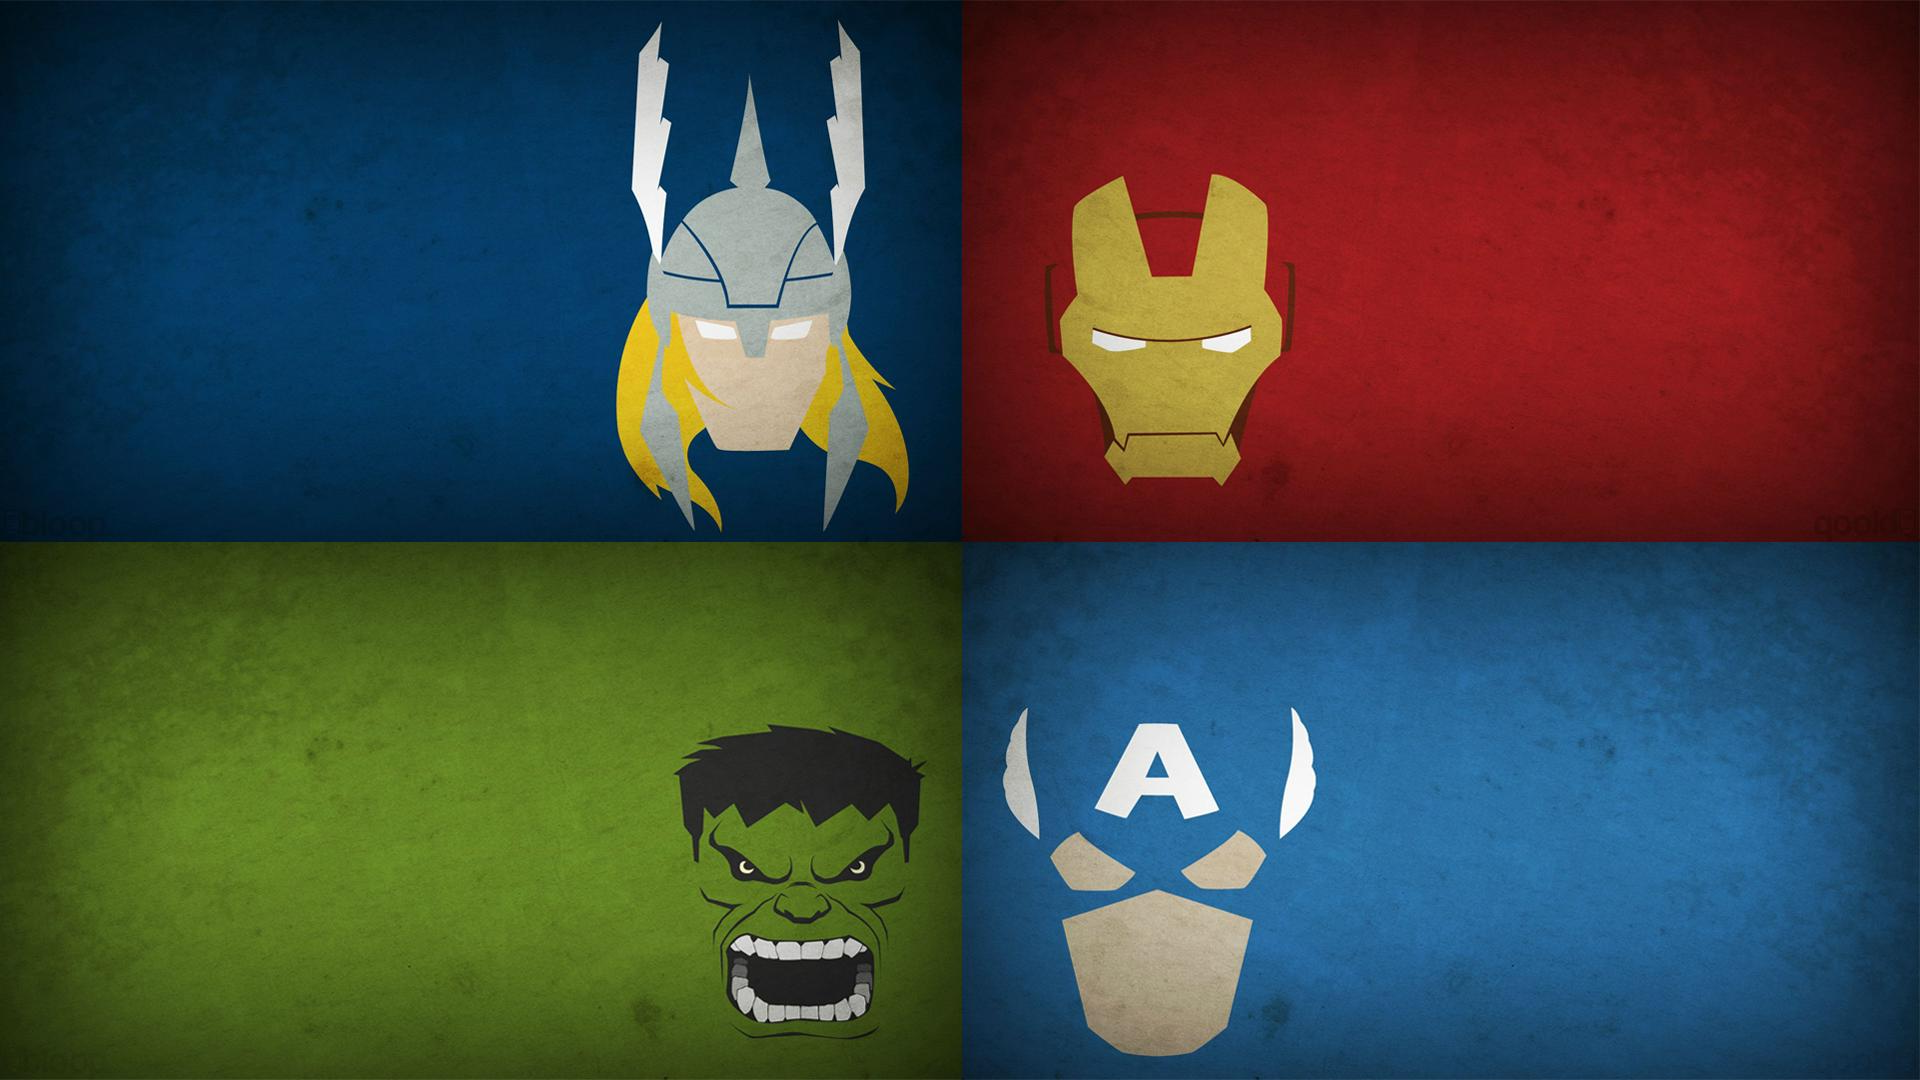 Wallpapers Of The Day: Avengers | 1920x1080 px Avengers Wallpapers